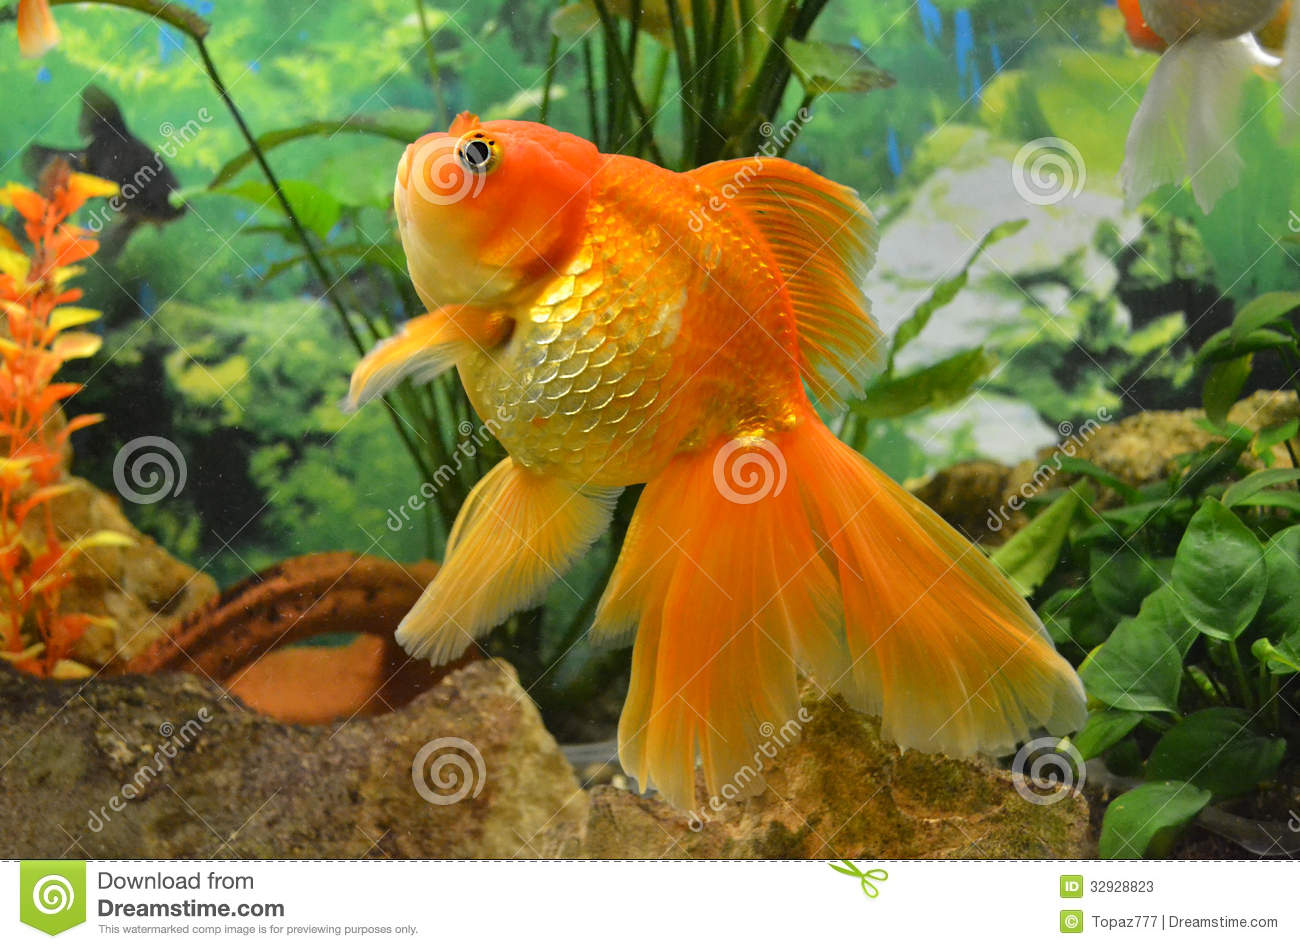 Aquarium goldfish carp stock photos image 32928823 for Carp in a fish tank